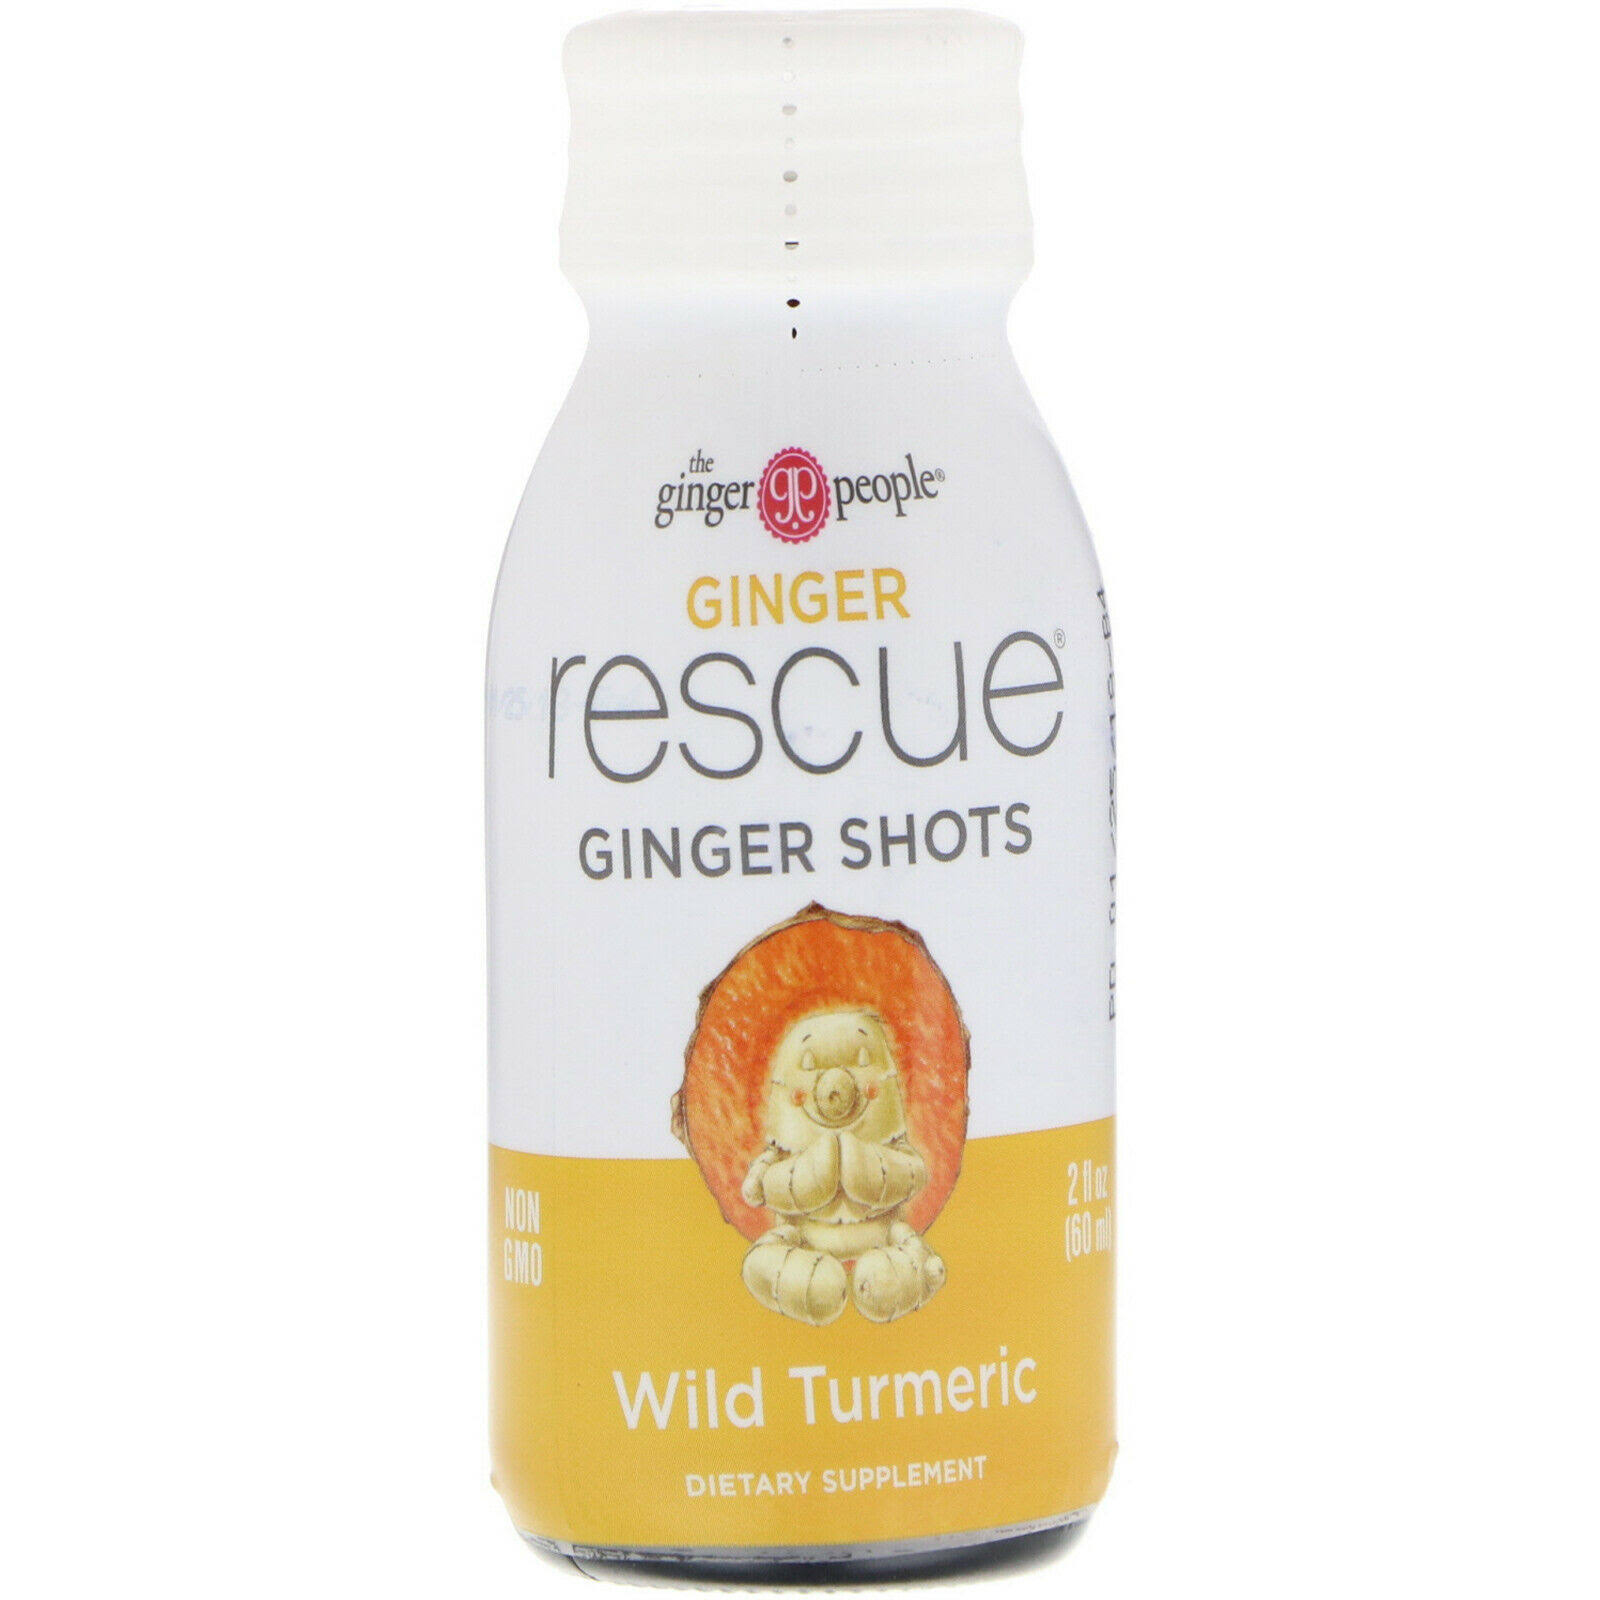 Ginger People Rescue Ginger Shots, Wild Turmeric - 2 fl oz